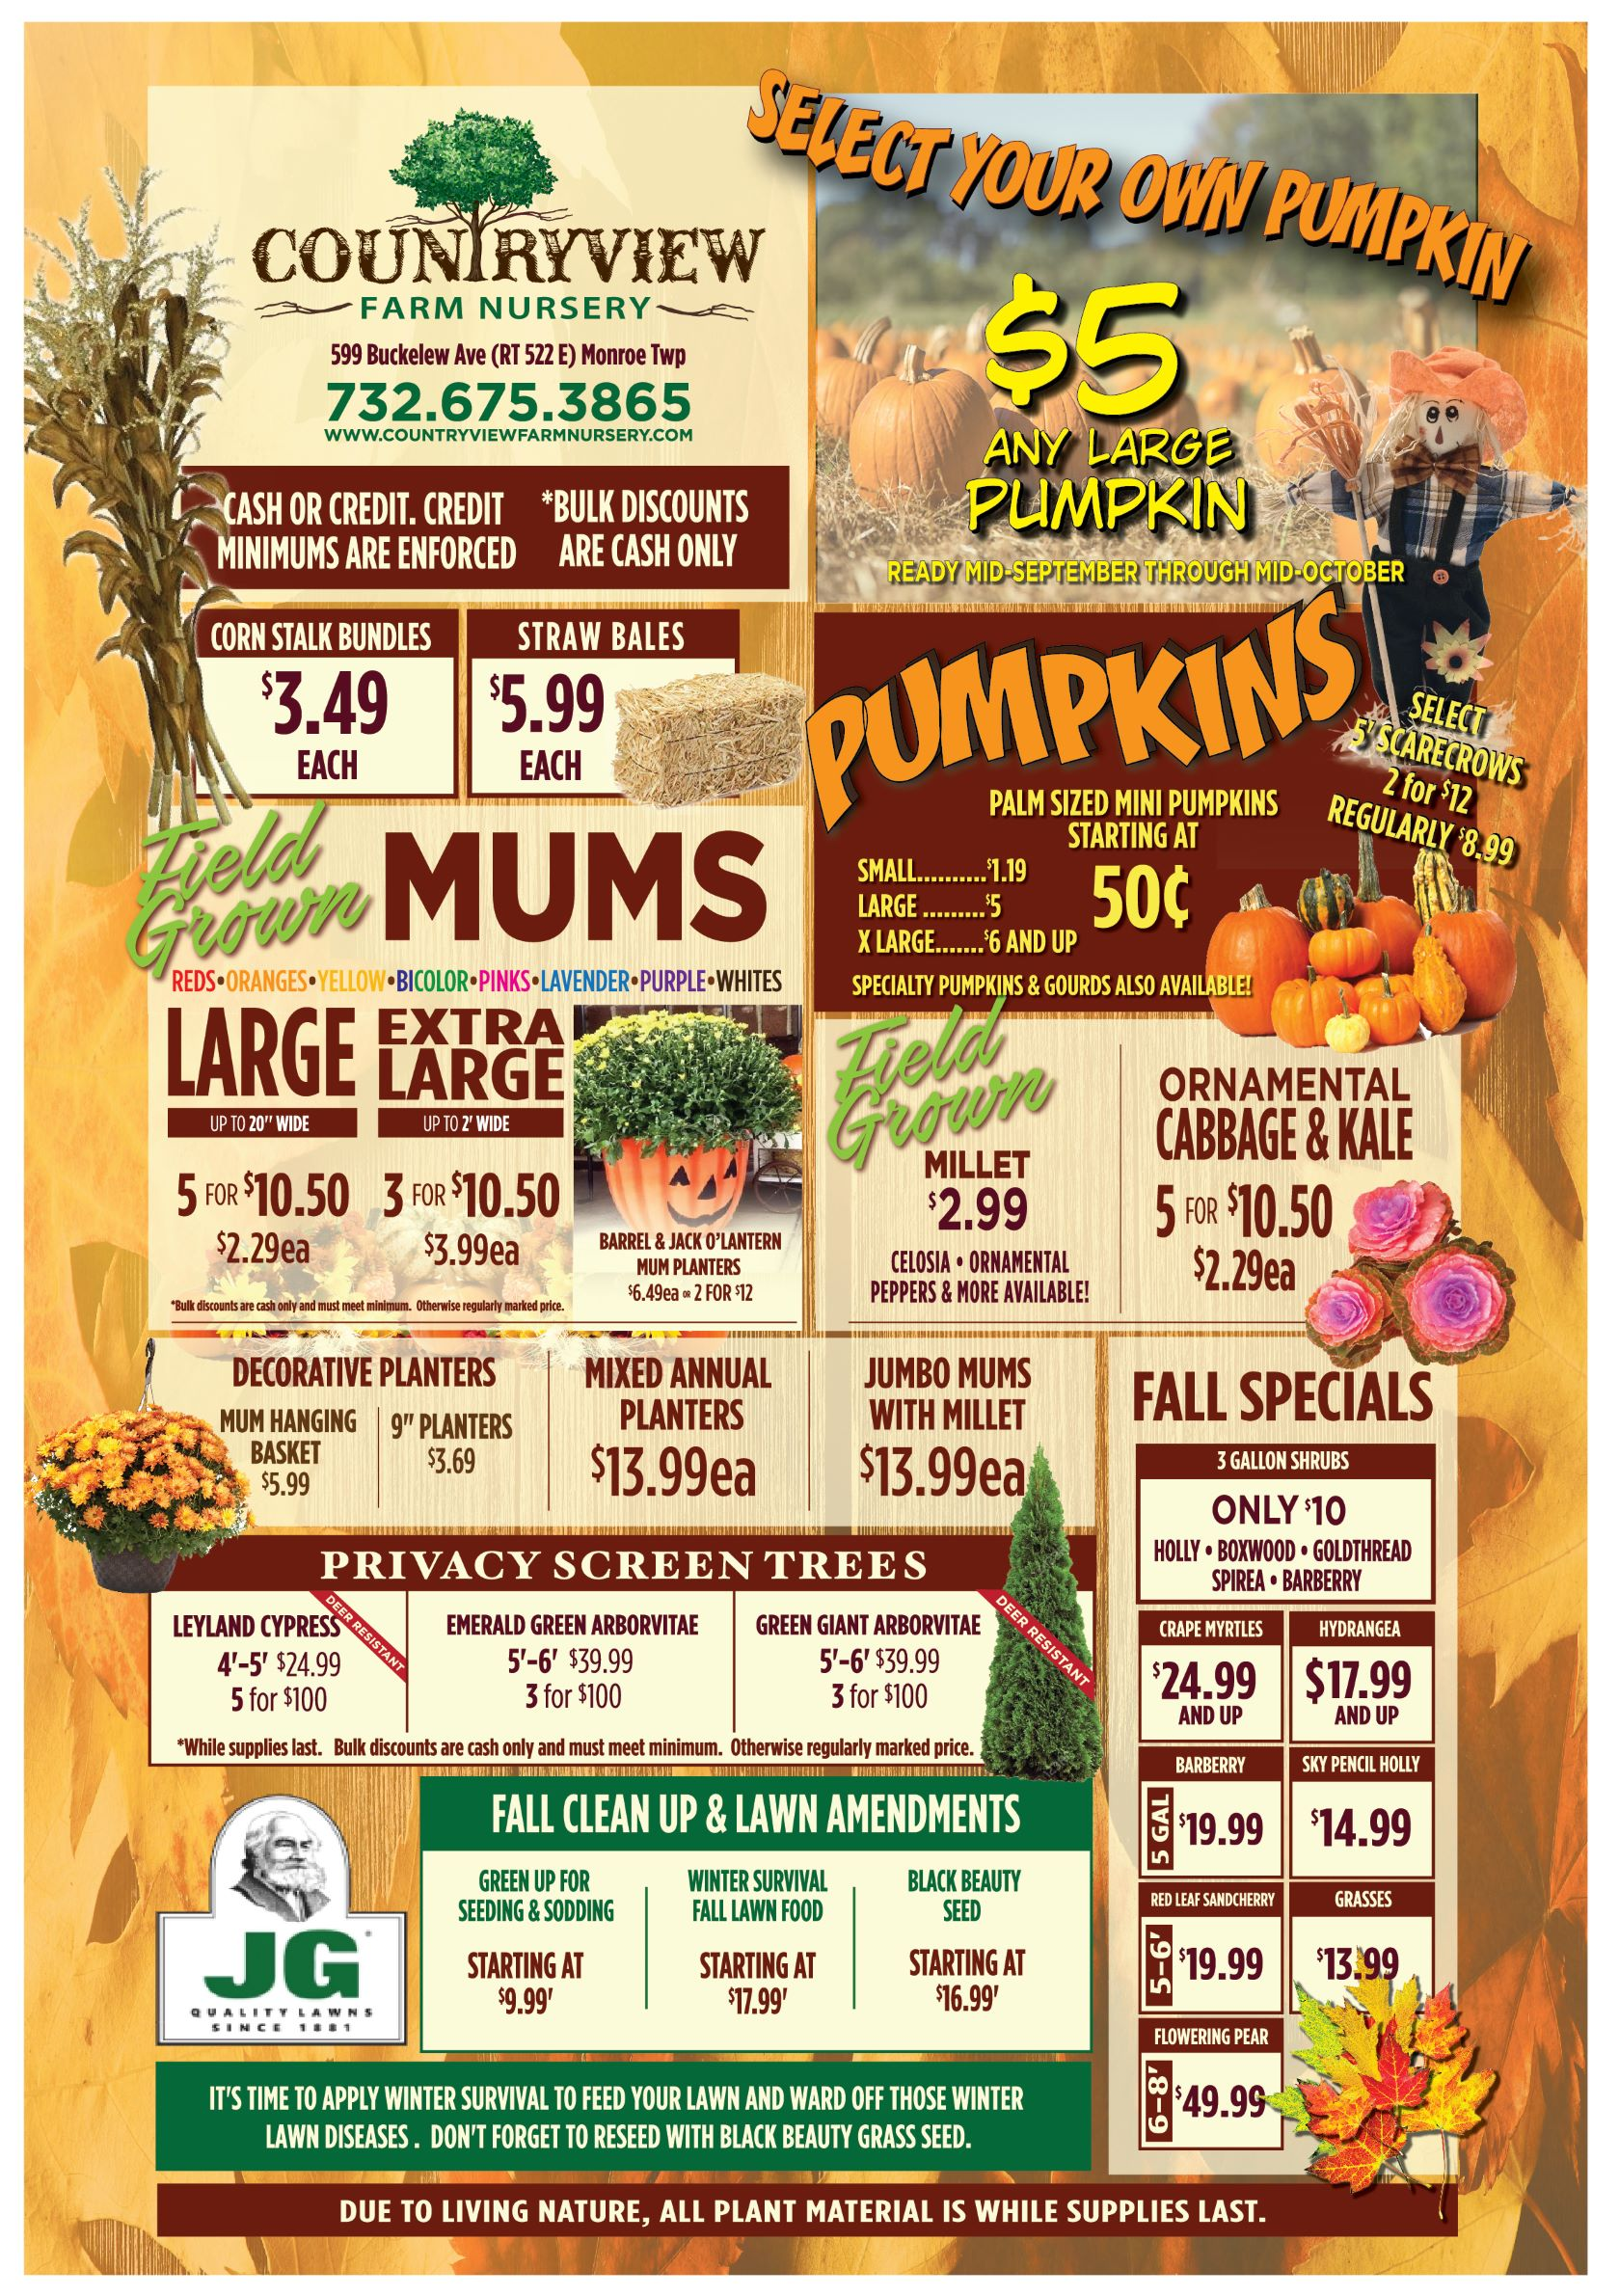 Countryview Farms Advertised Specials